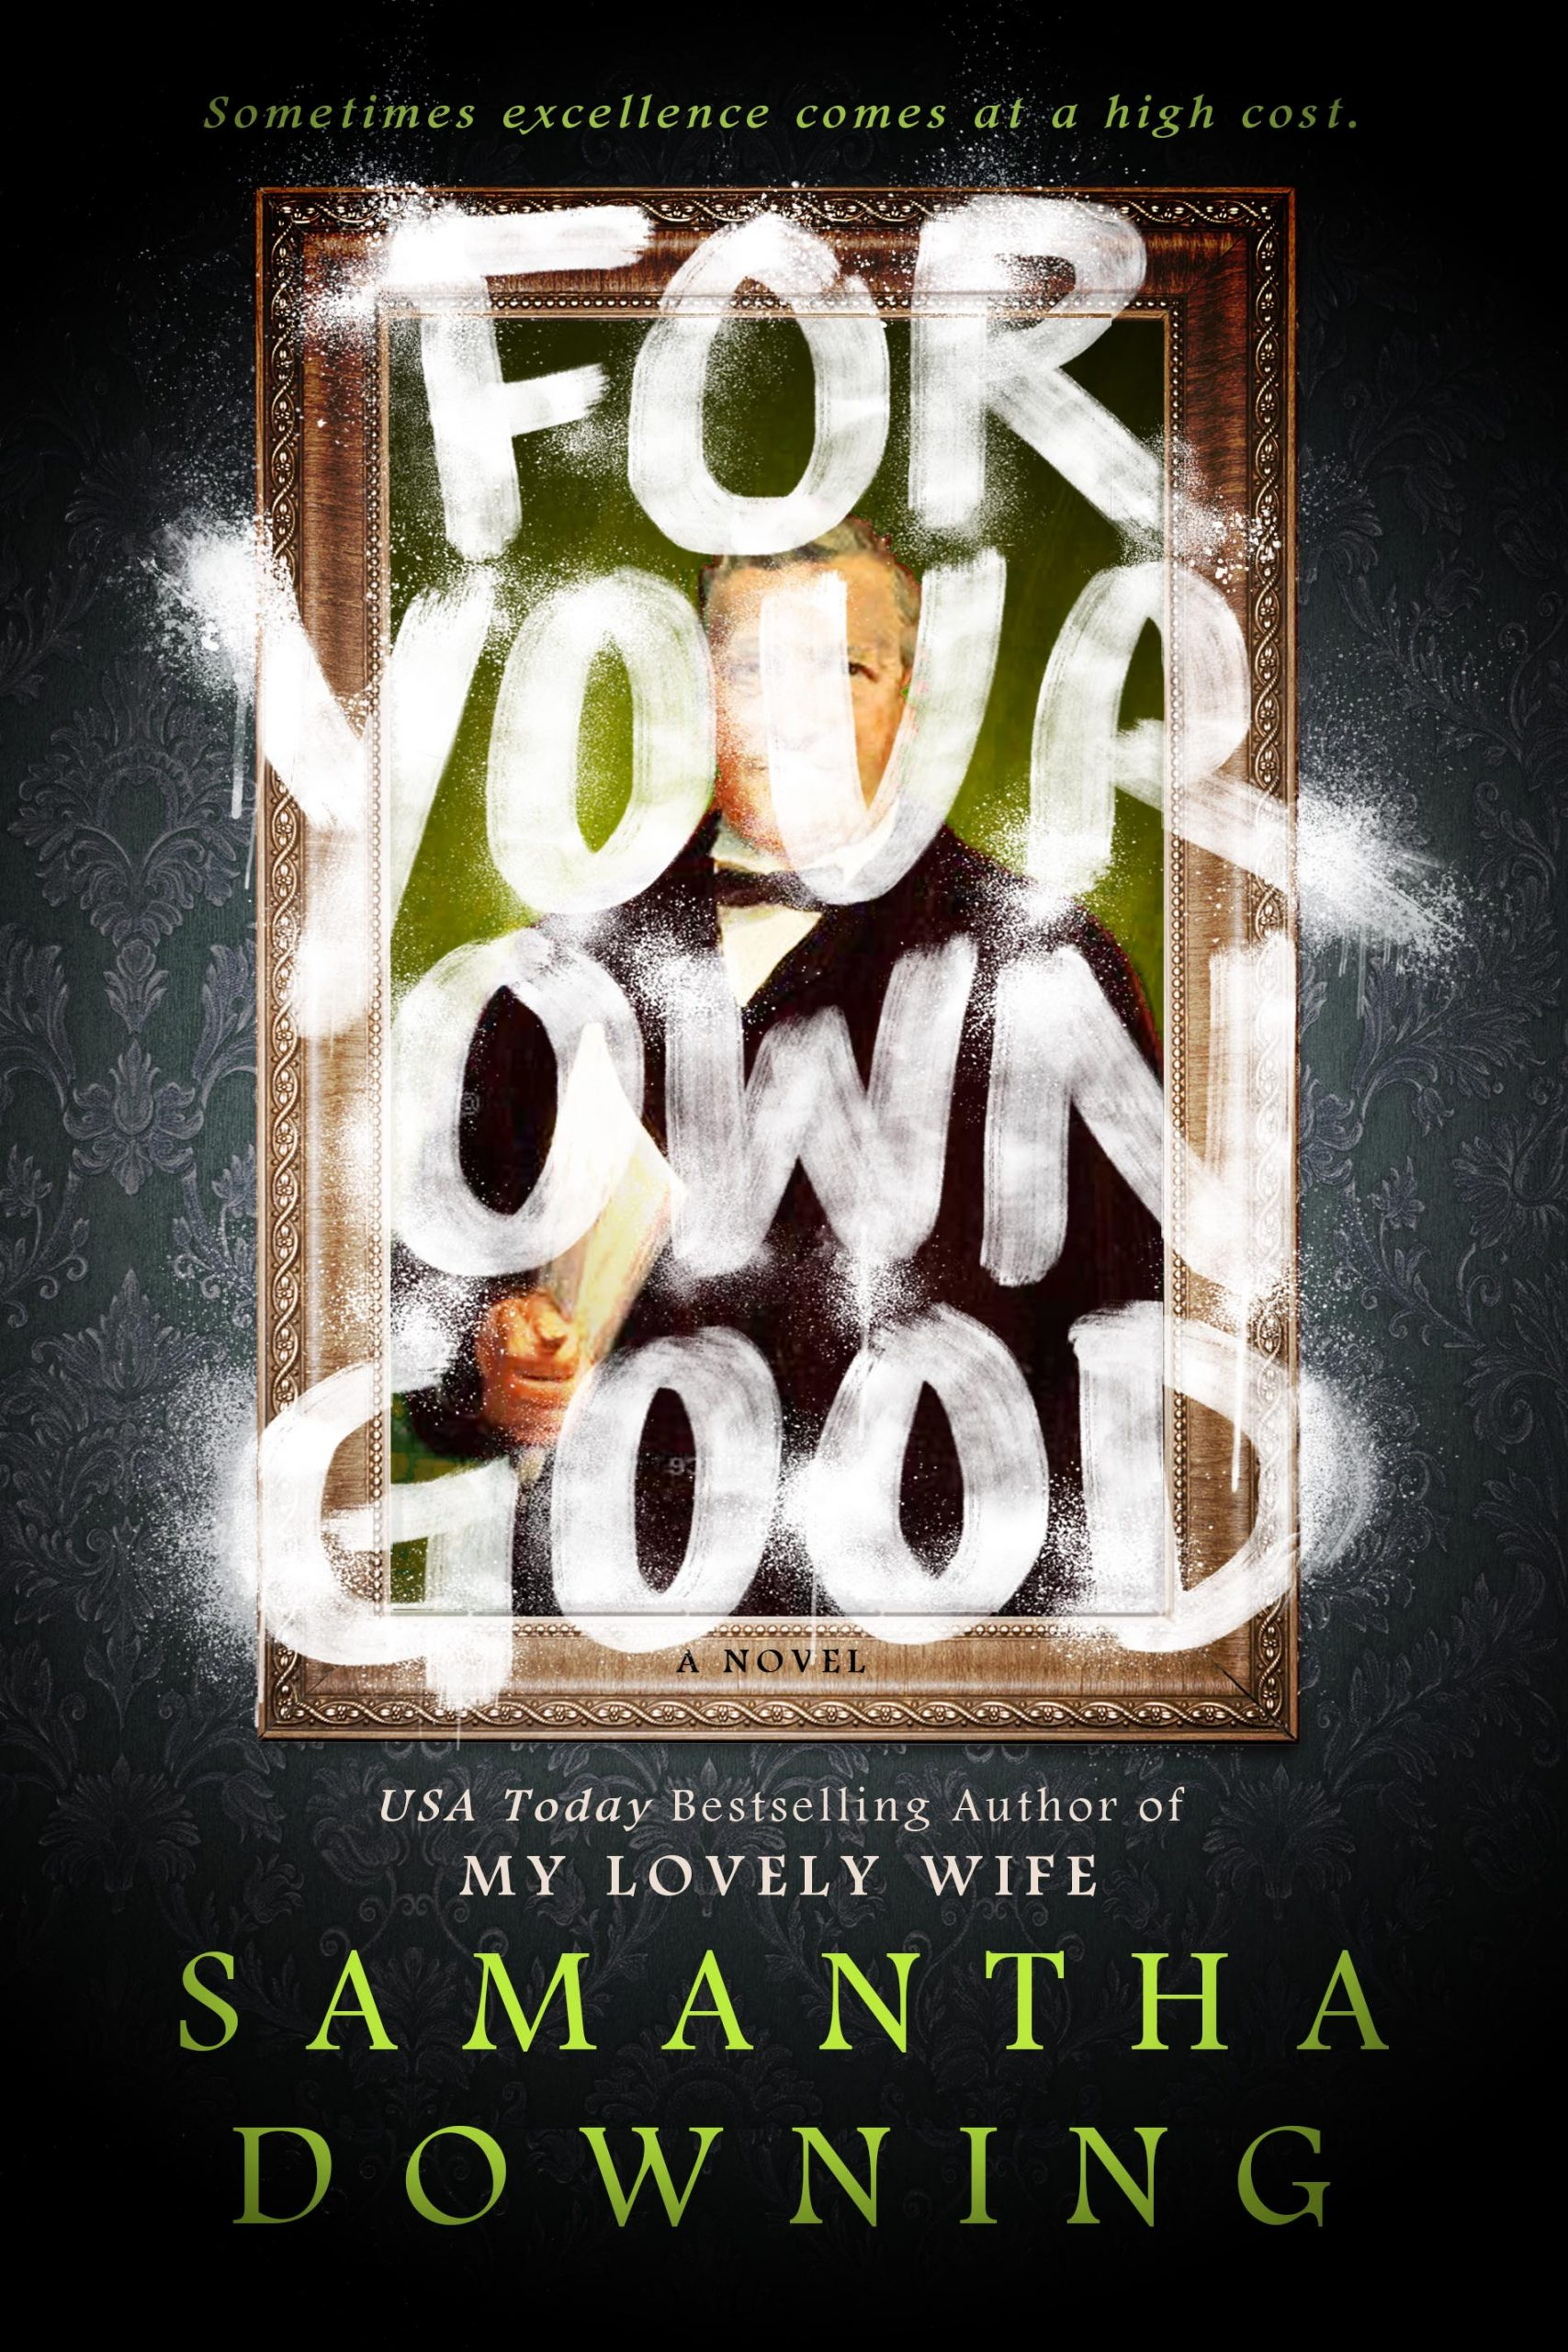 When Will For Your Own Good Come Out? Samantha Downing 2021 New Releases